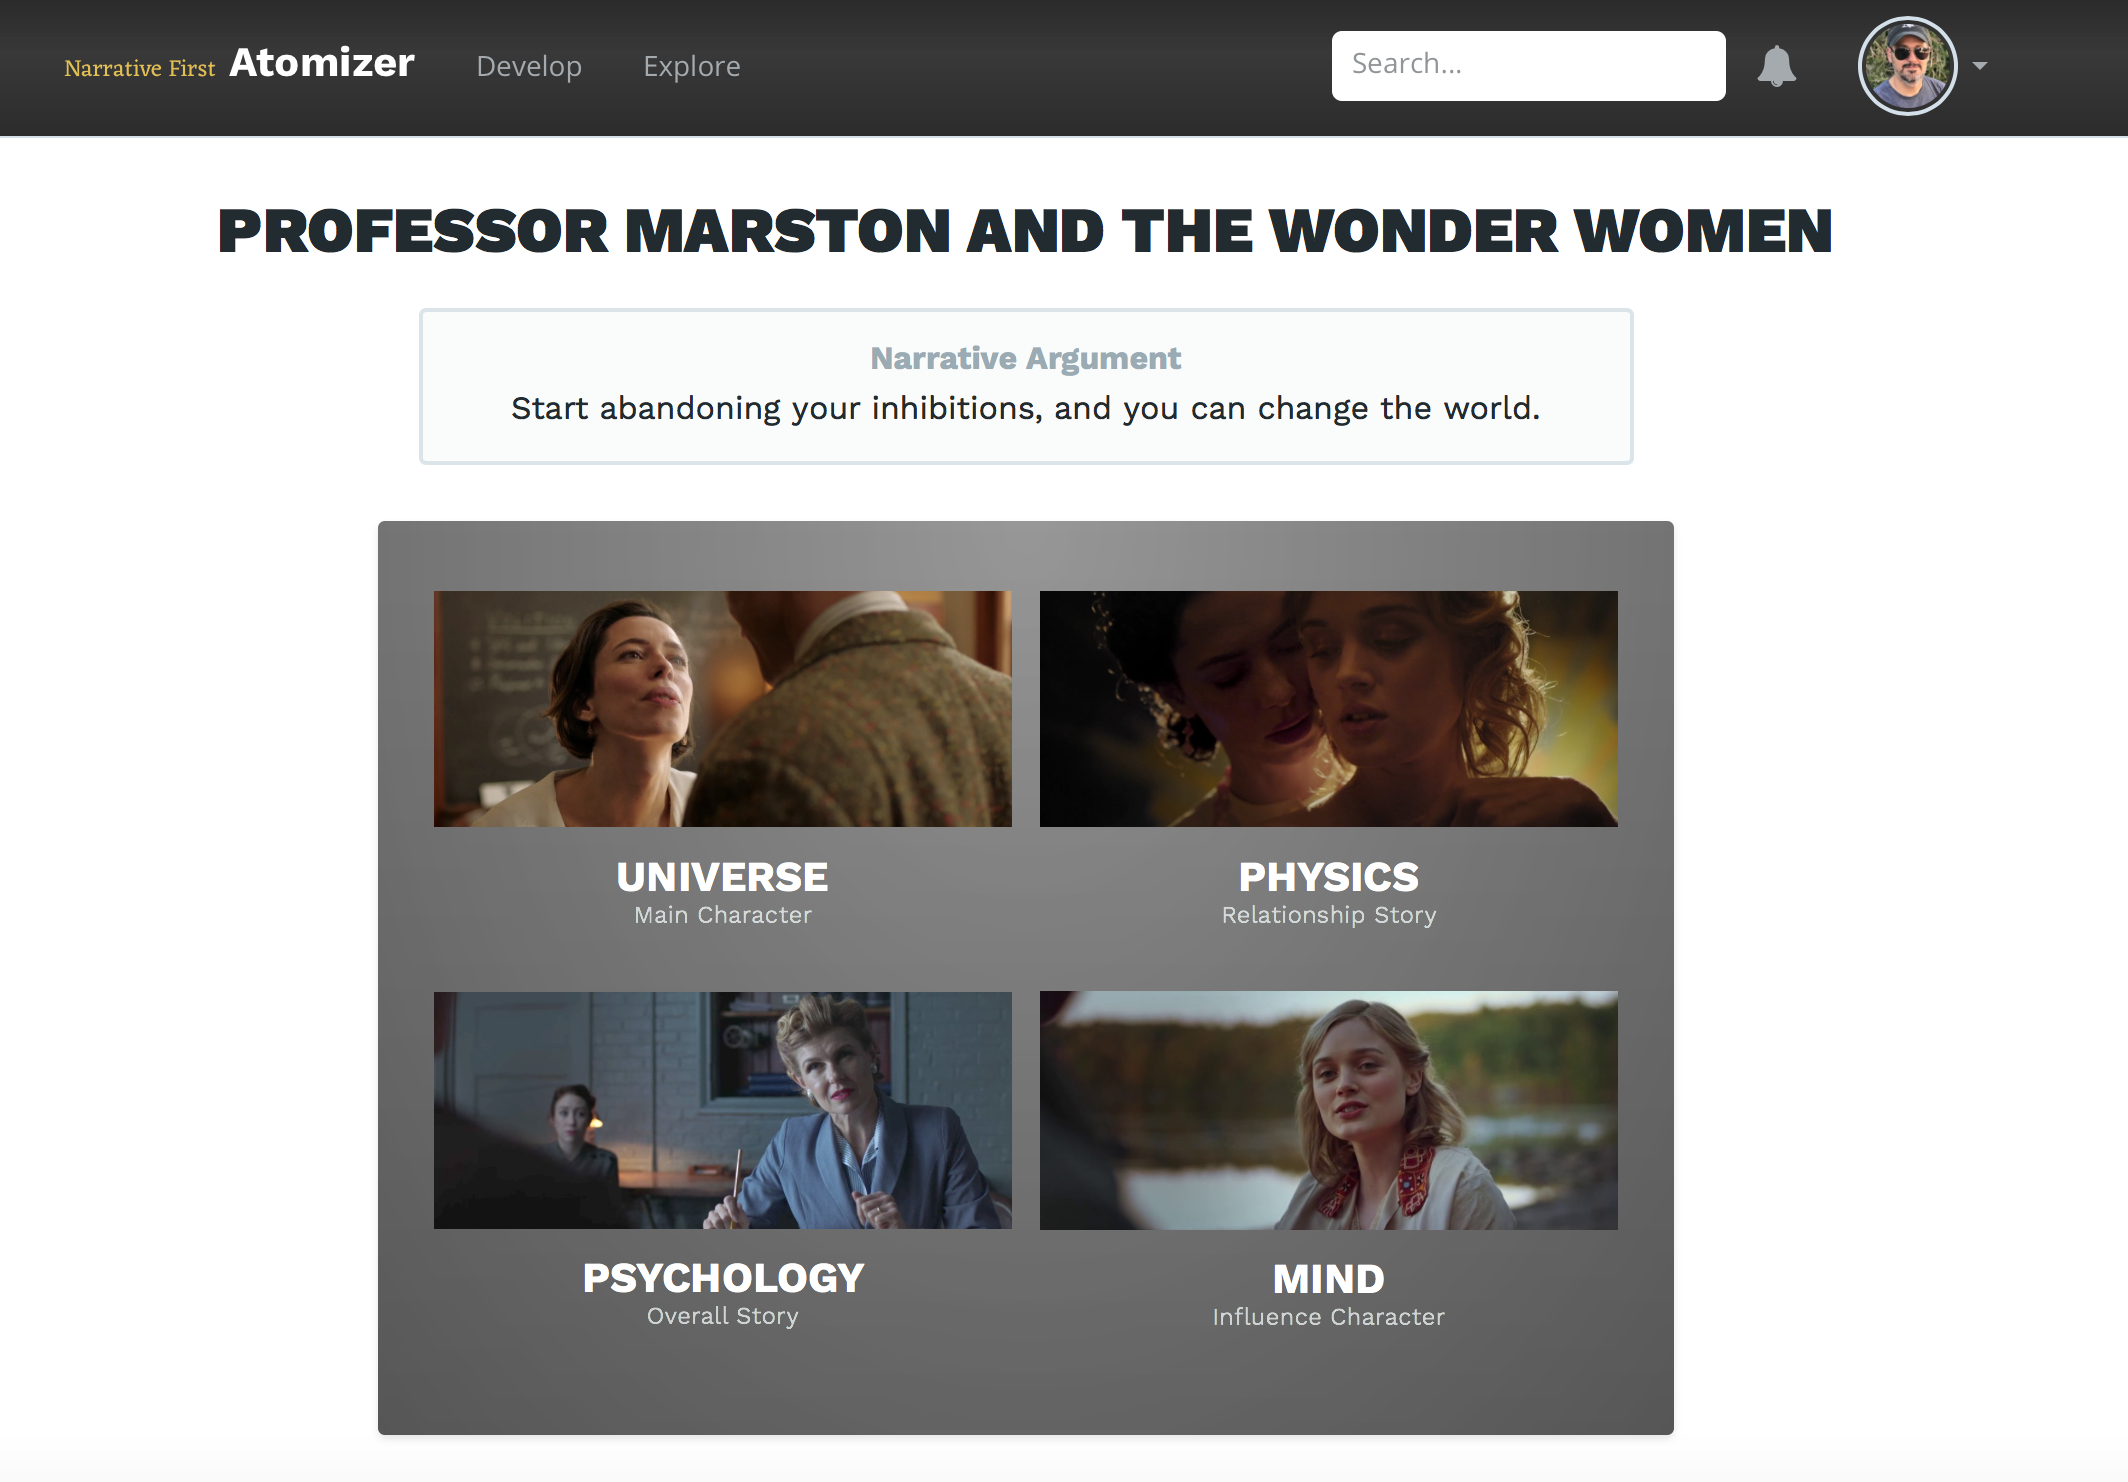 The Narrative Argument for _Professor Marston and the Wonder Women_